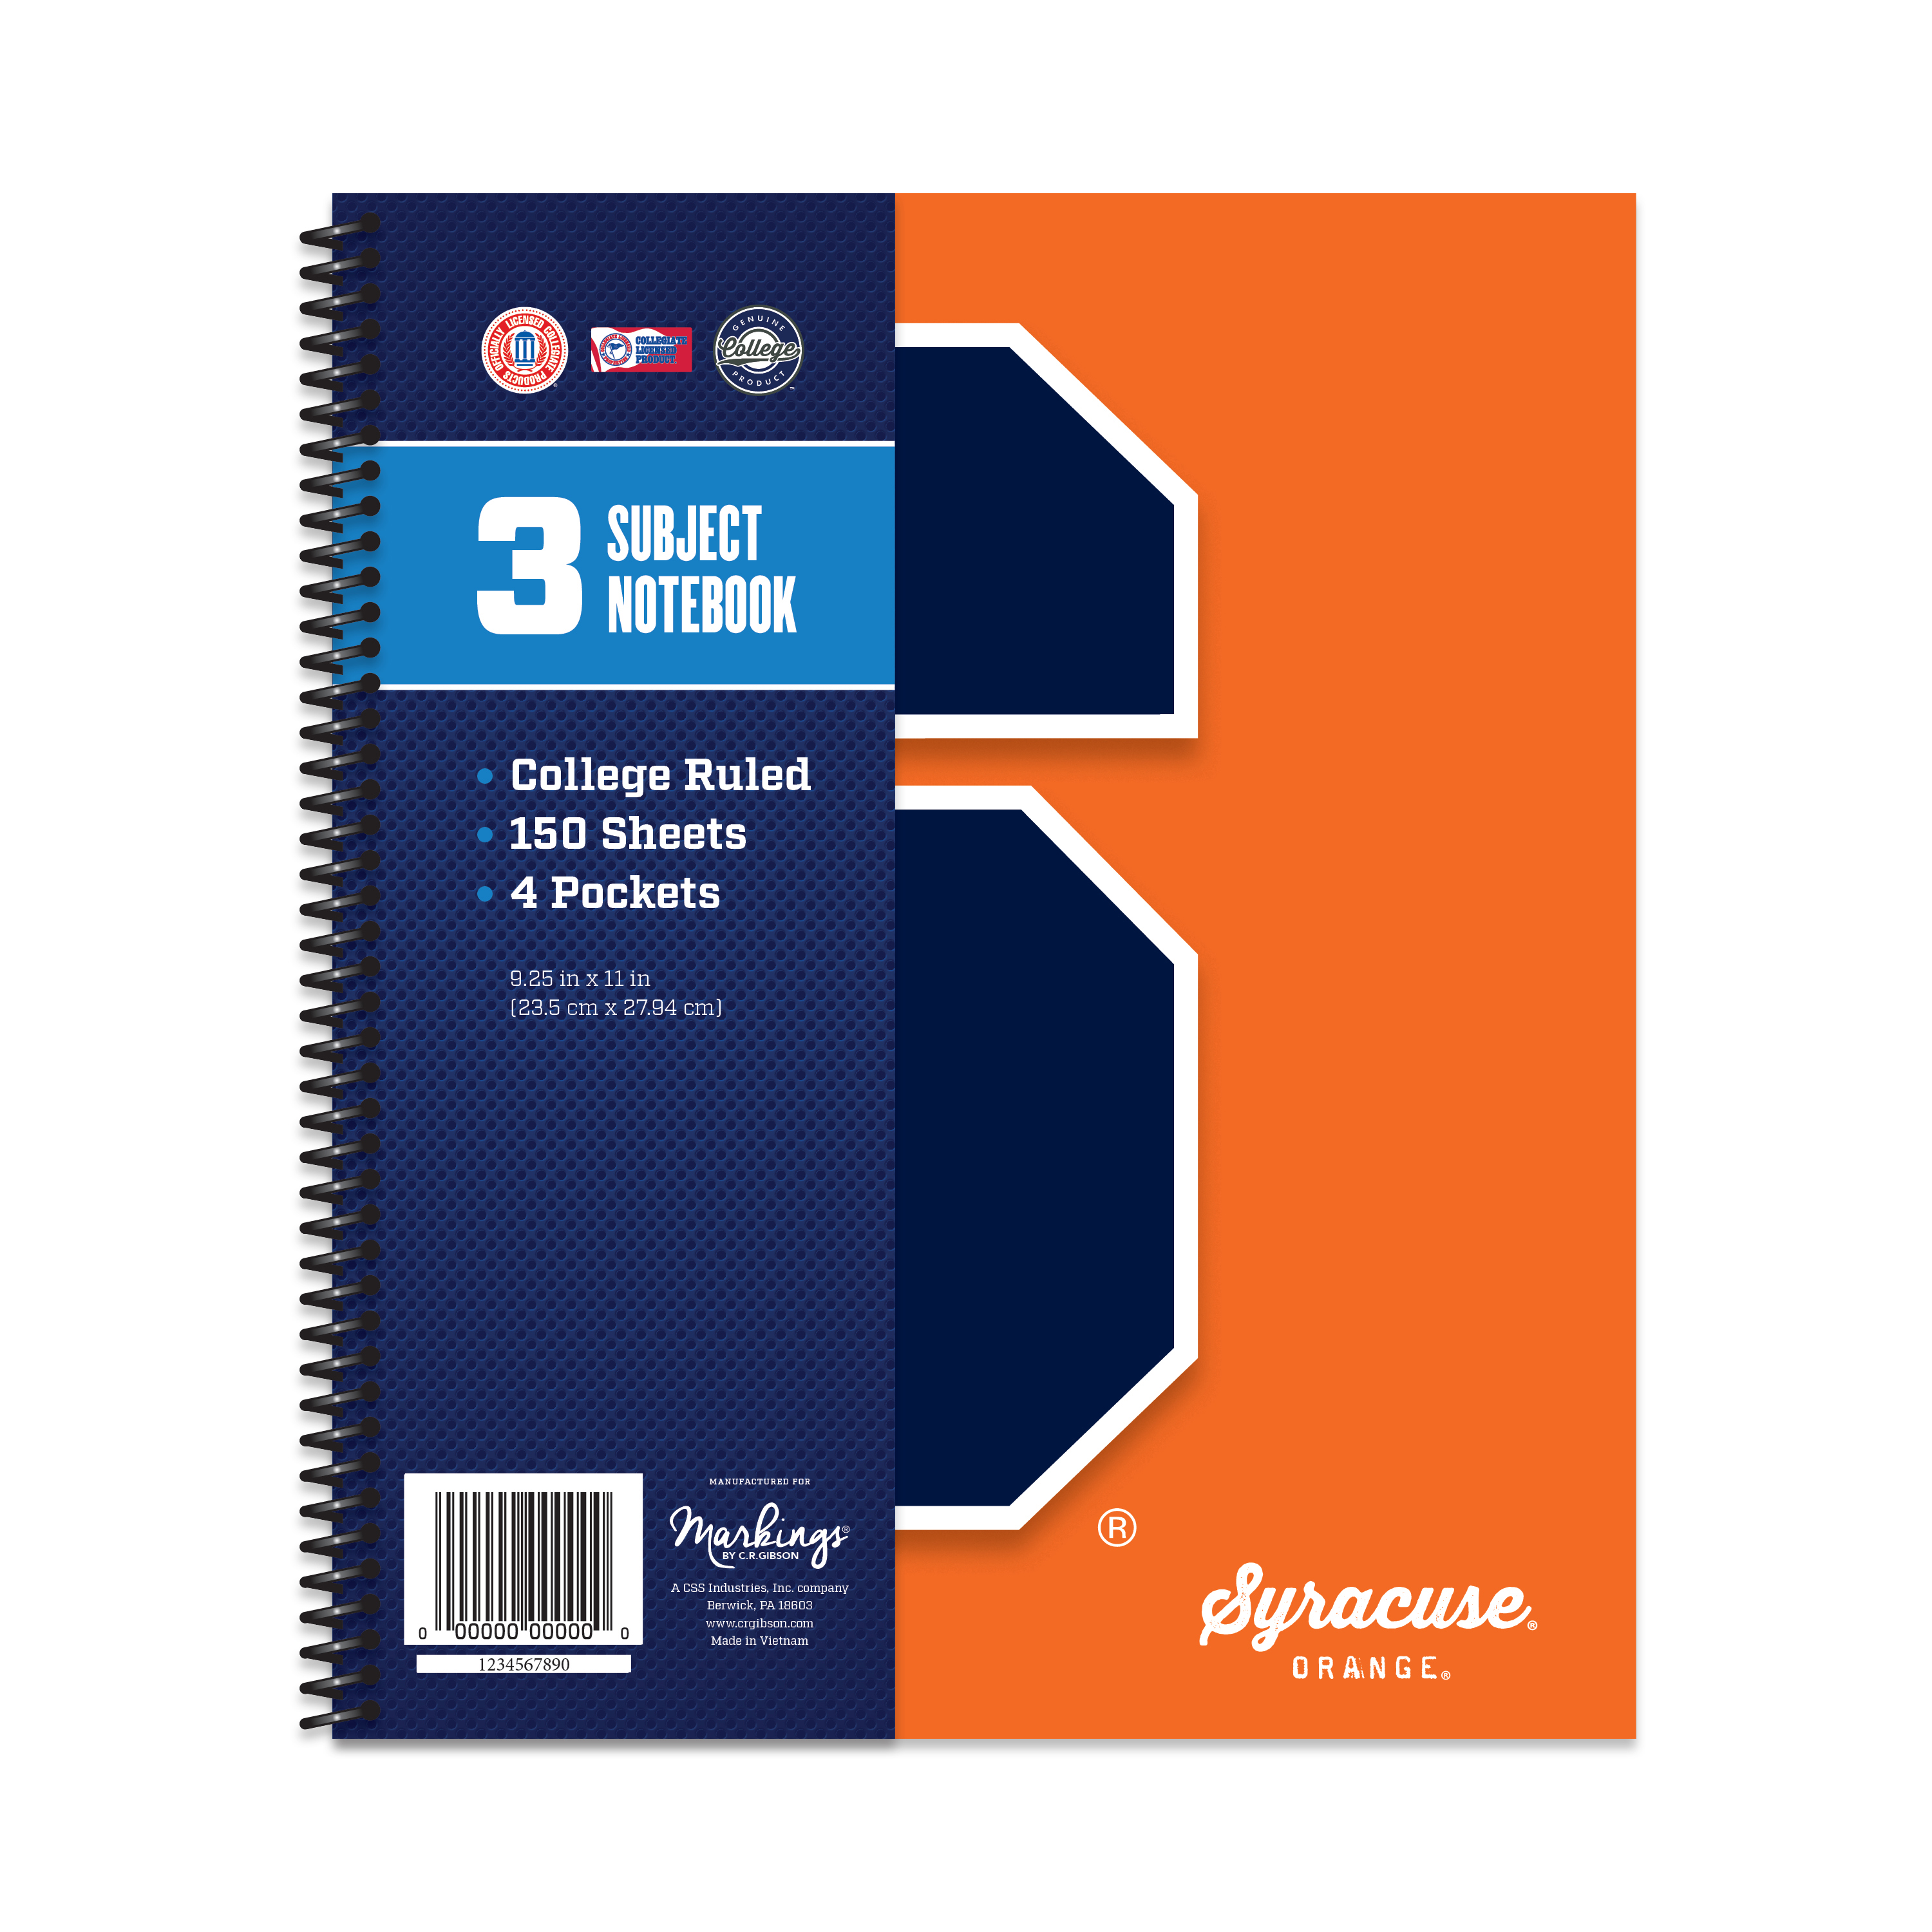 SYRACUSE ORANGE CLASSIC 3-SUBJECT NOTEBOOK